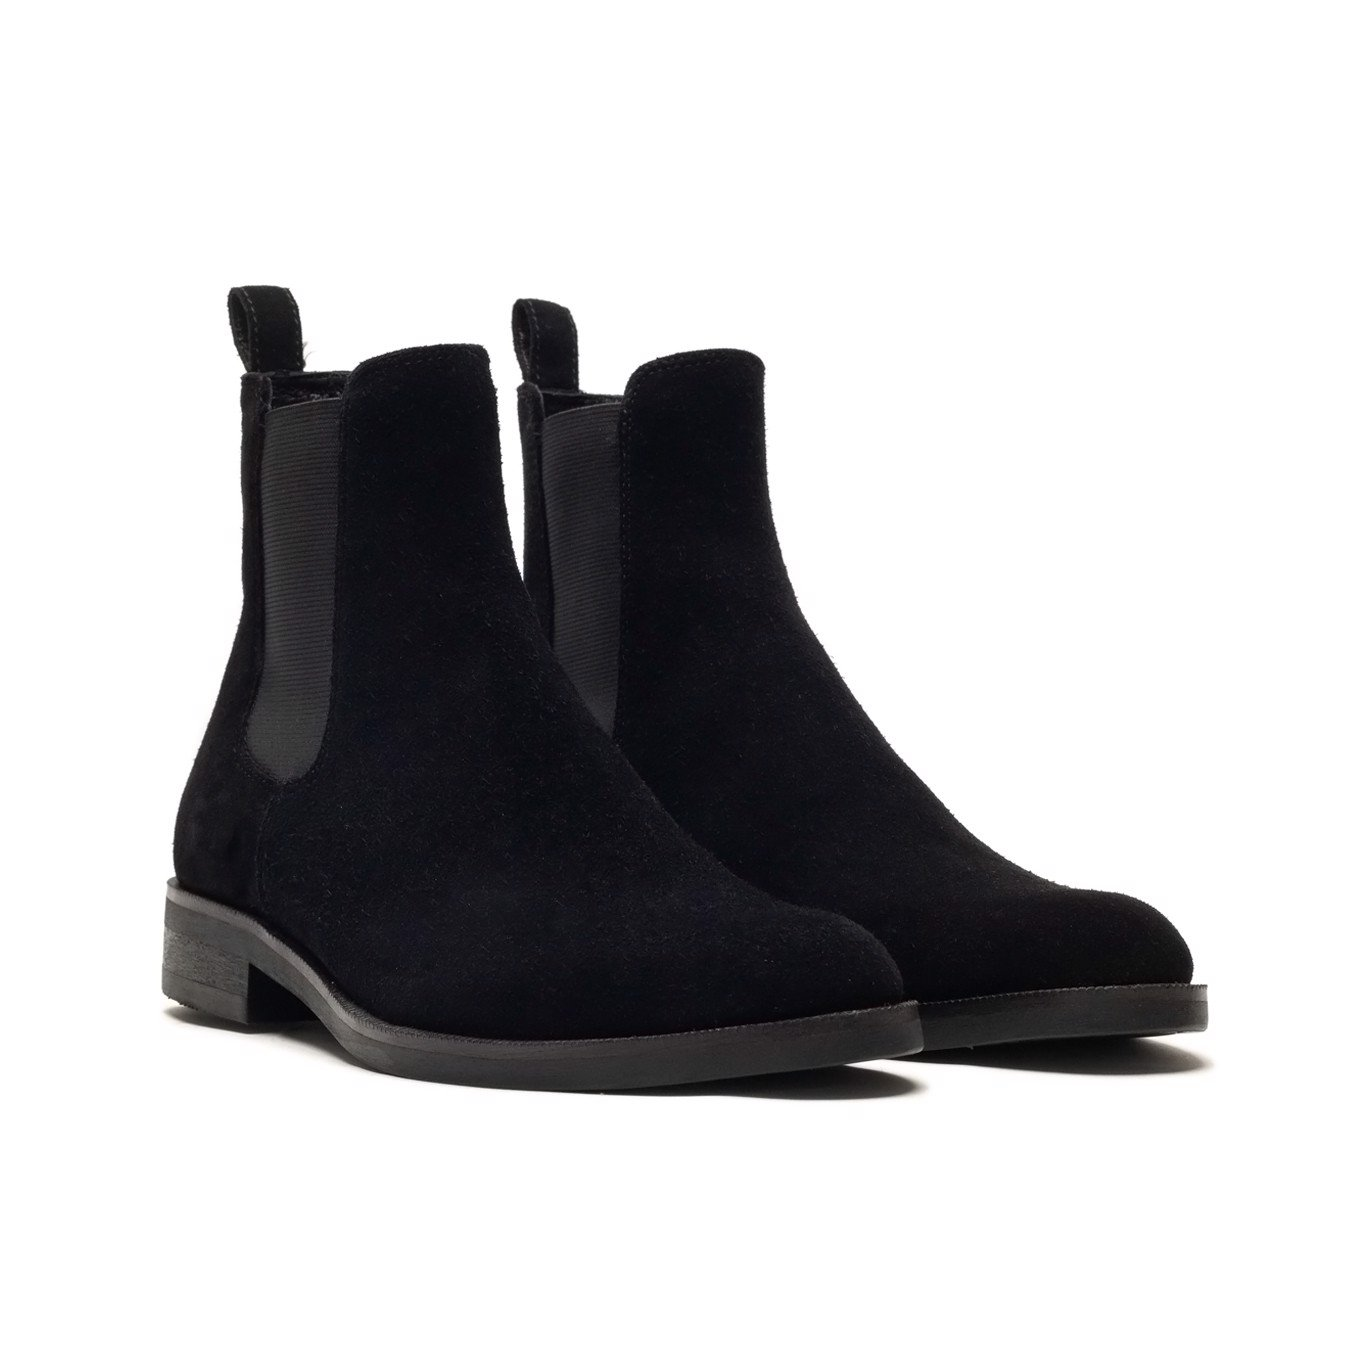 THE X FLAWLESS CHELSEA BOOT - ĐEN DA LỘN